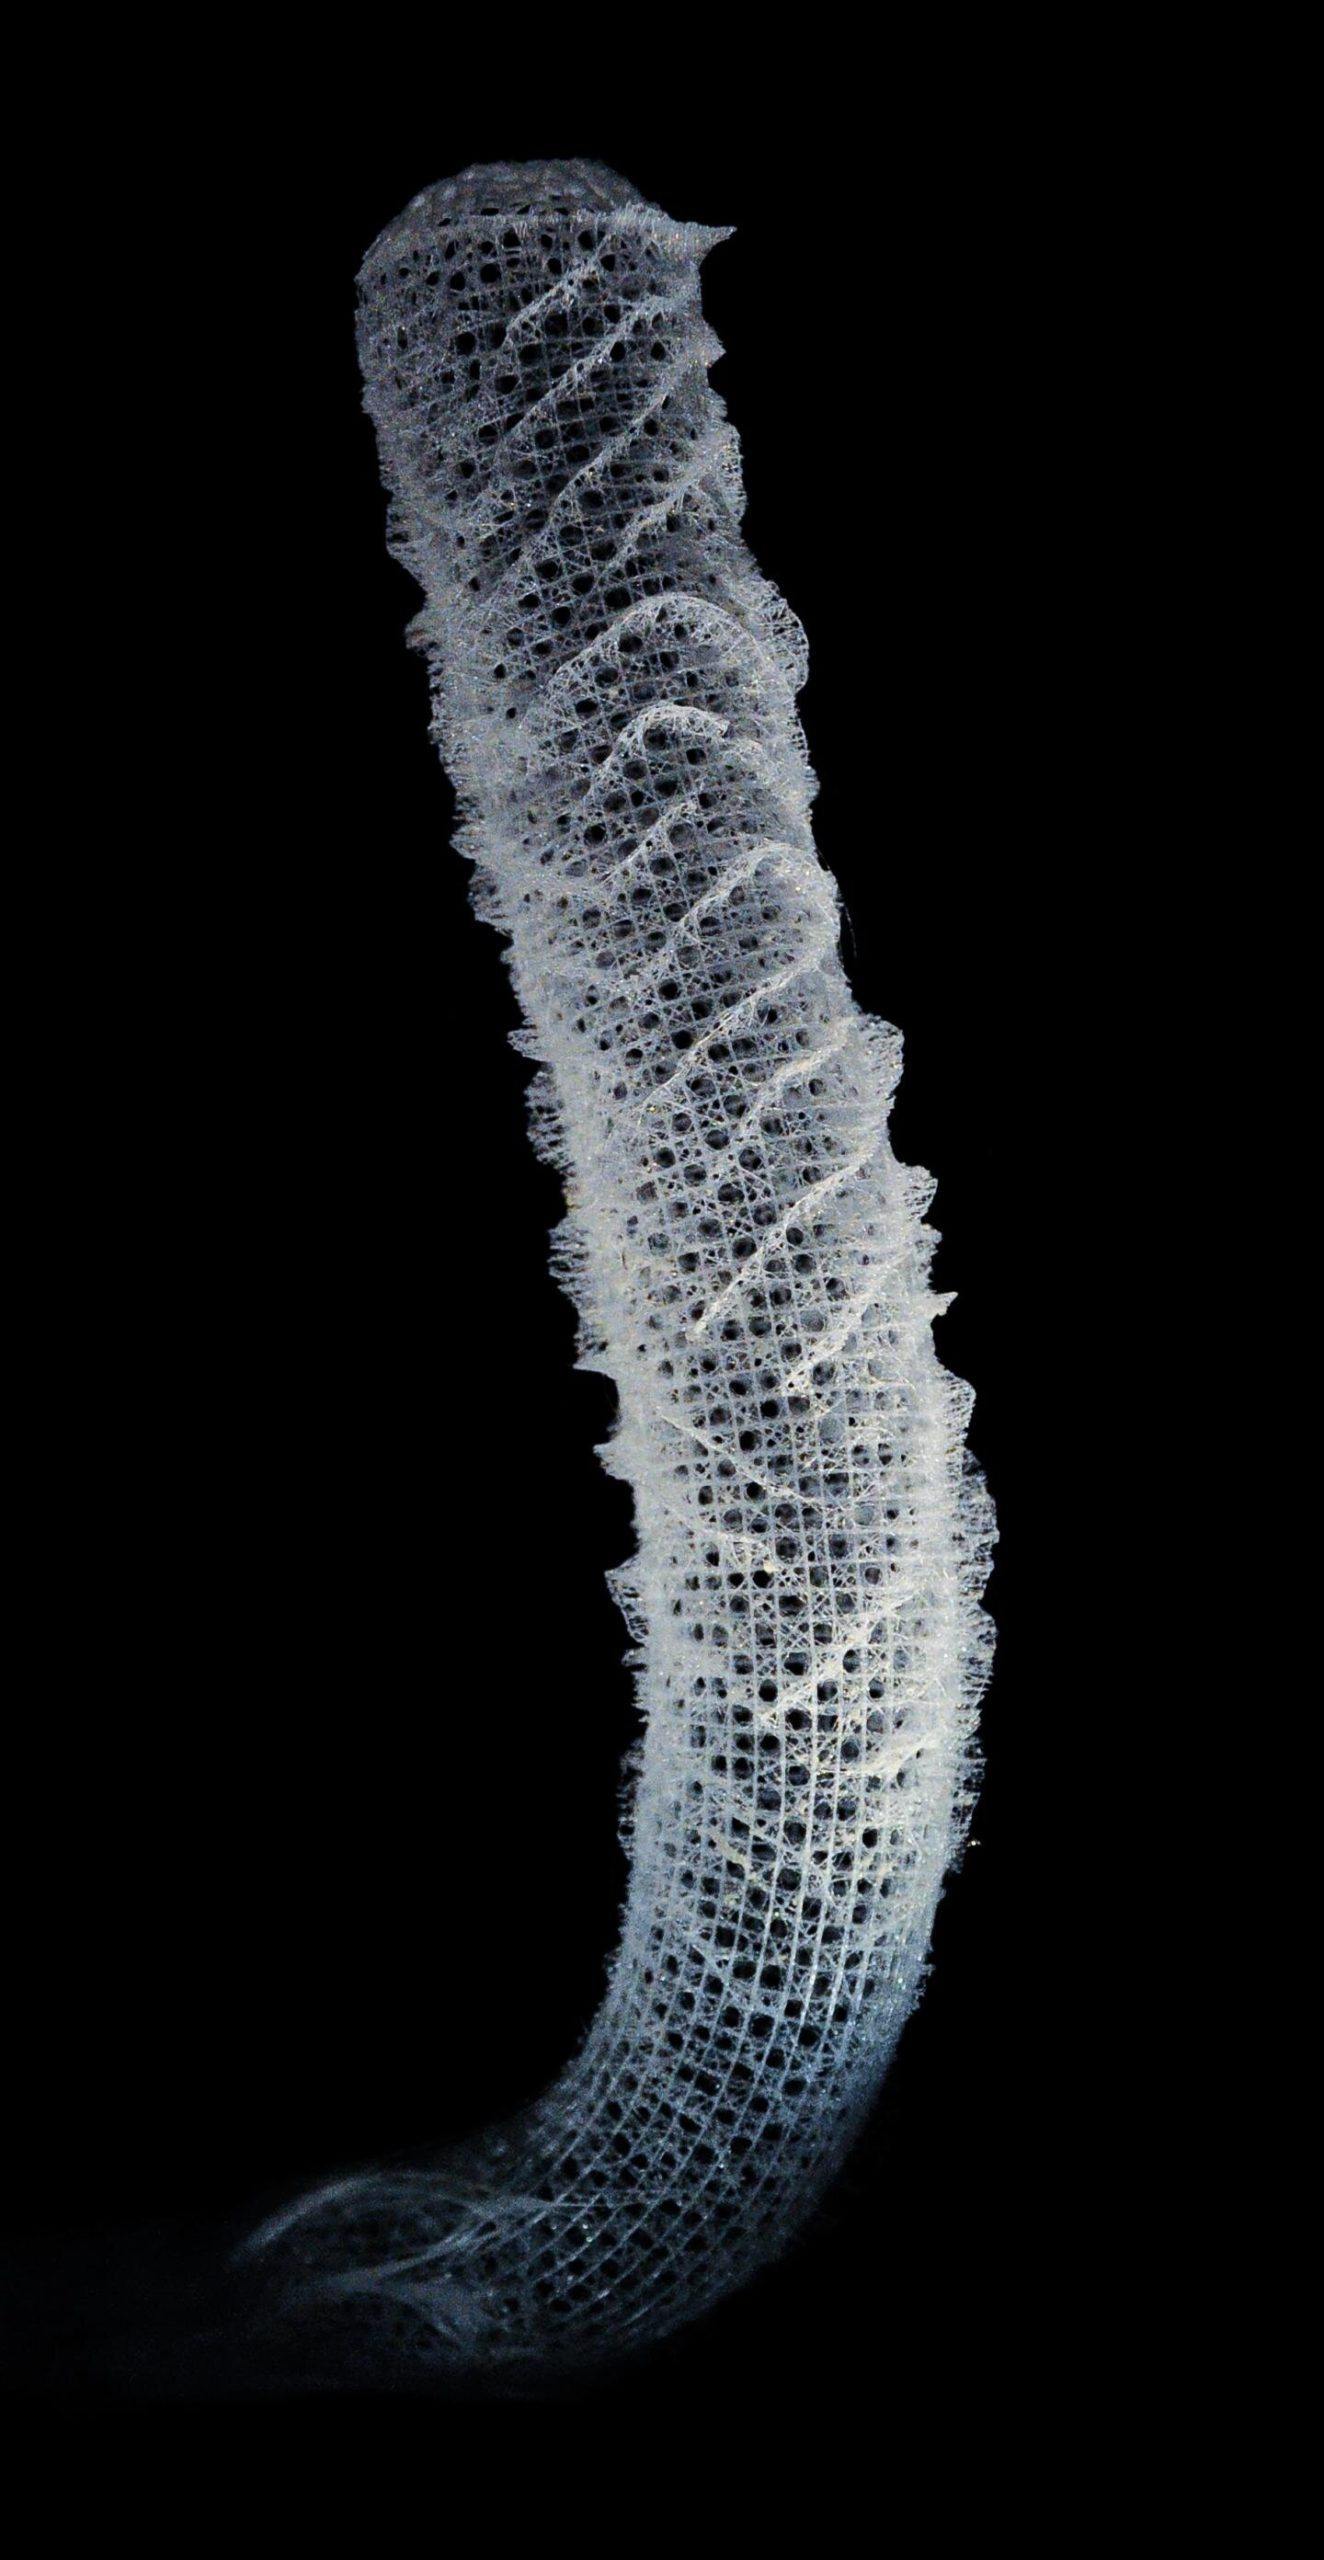 Marine sponges inspire the next generation of skyscrapers and bridges – Phys.org